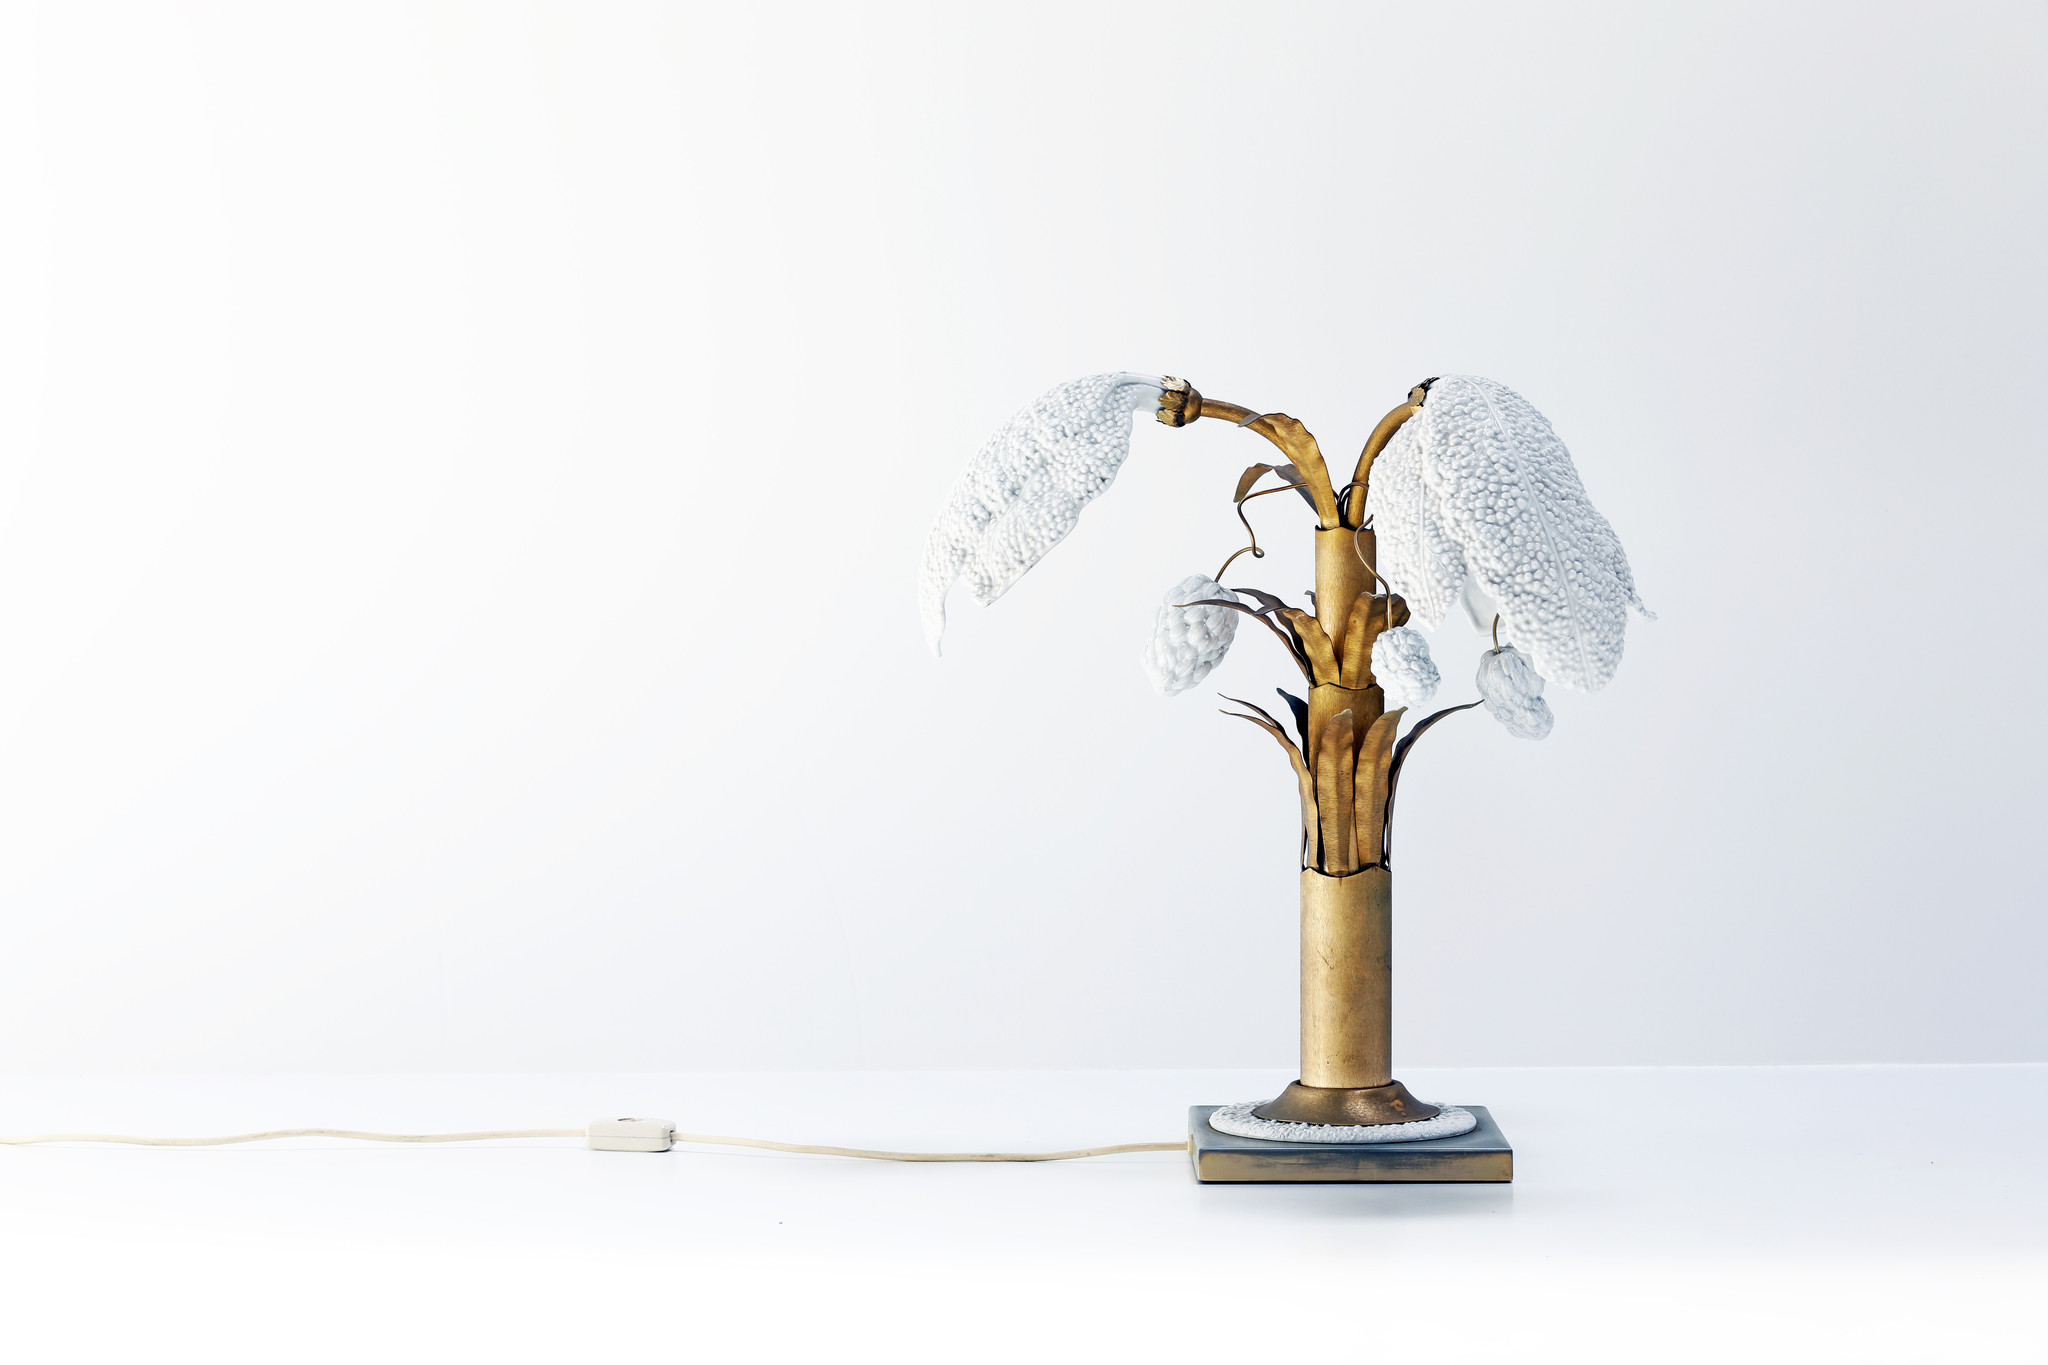 Ceramic table lamp with brass